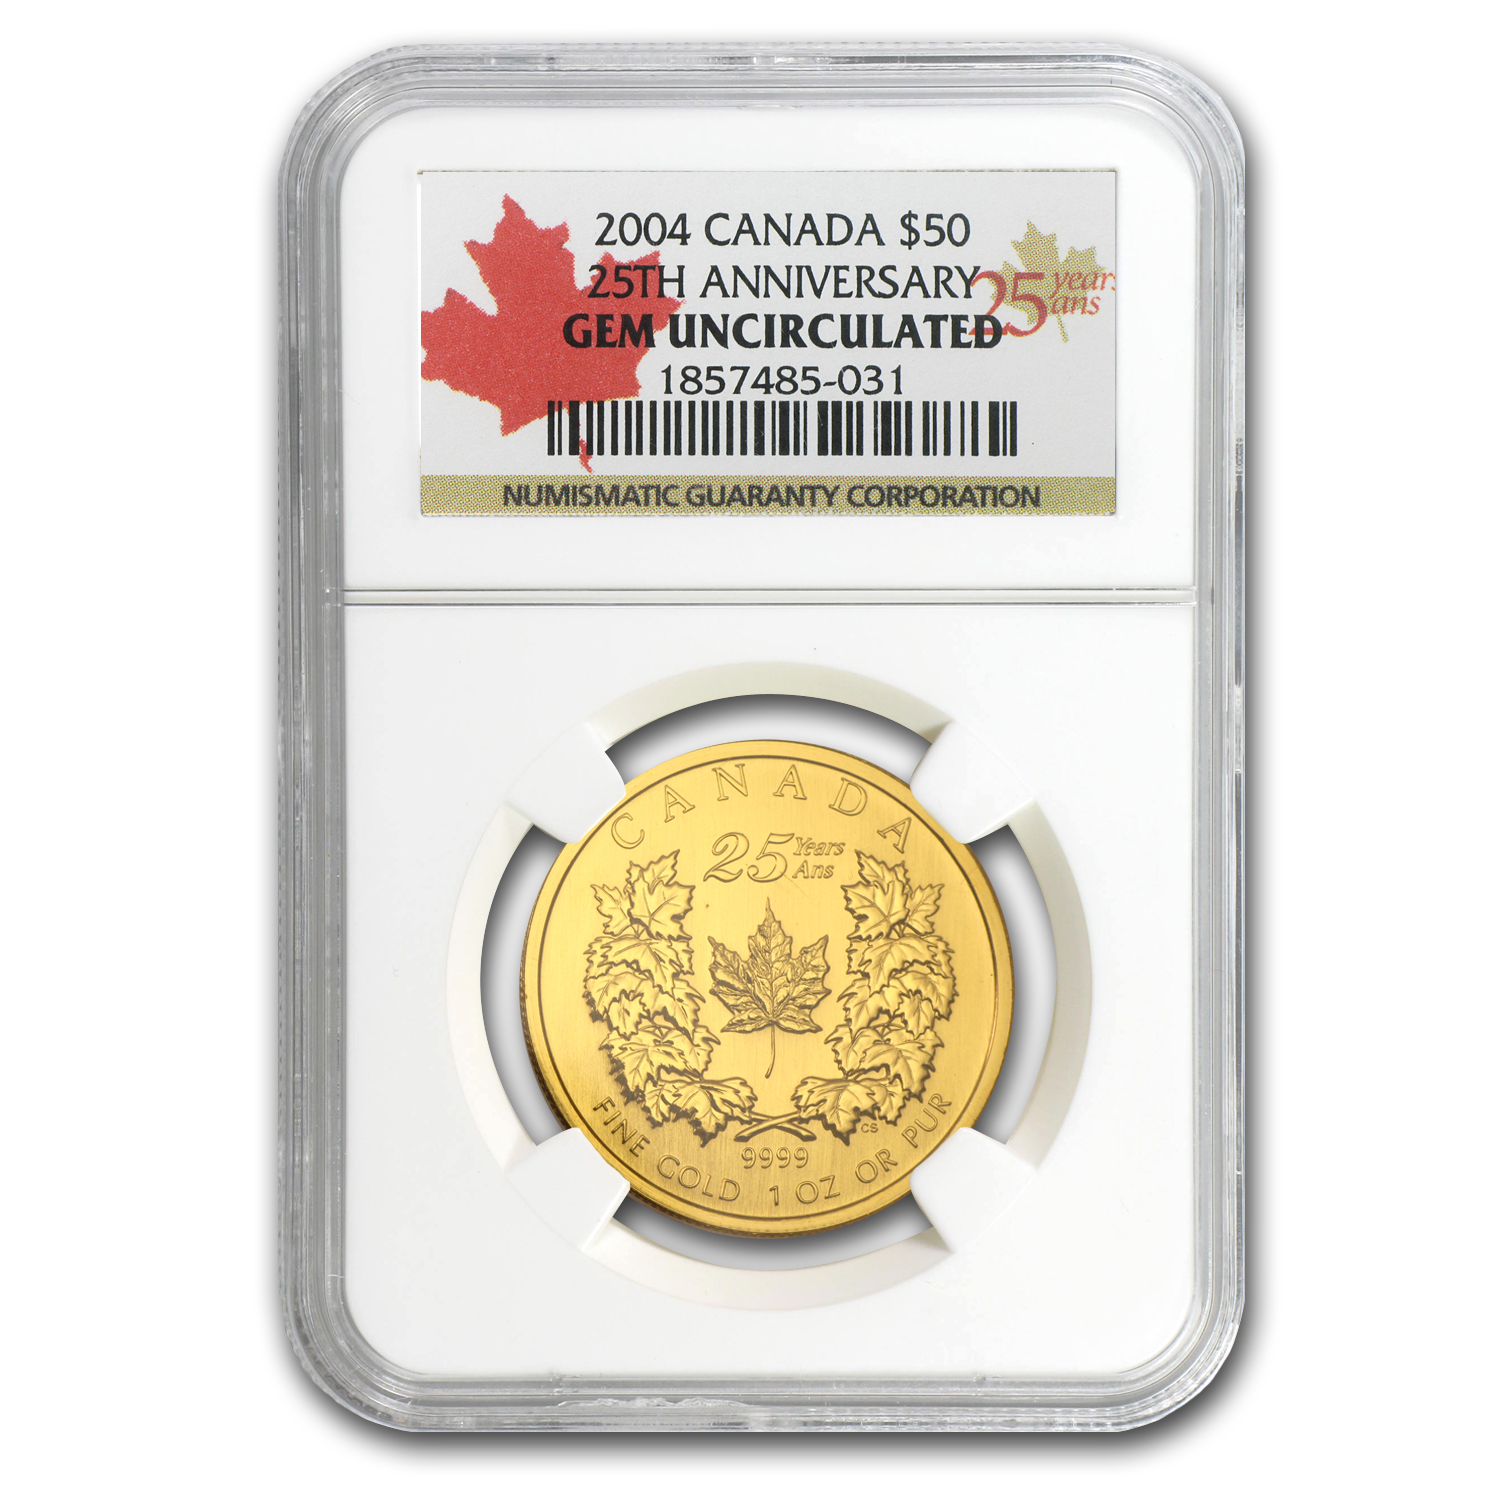 2004 1 oz Gold Canadian Maple Leaf Gem Unc NGC (25th Anniv)